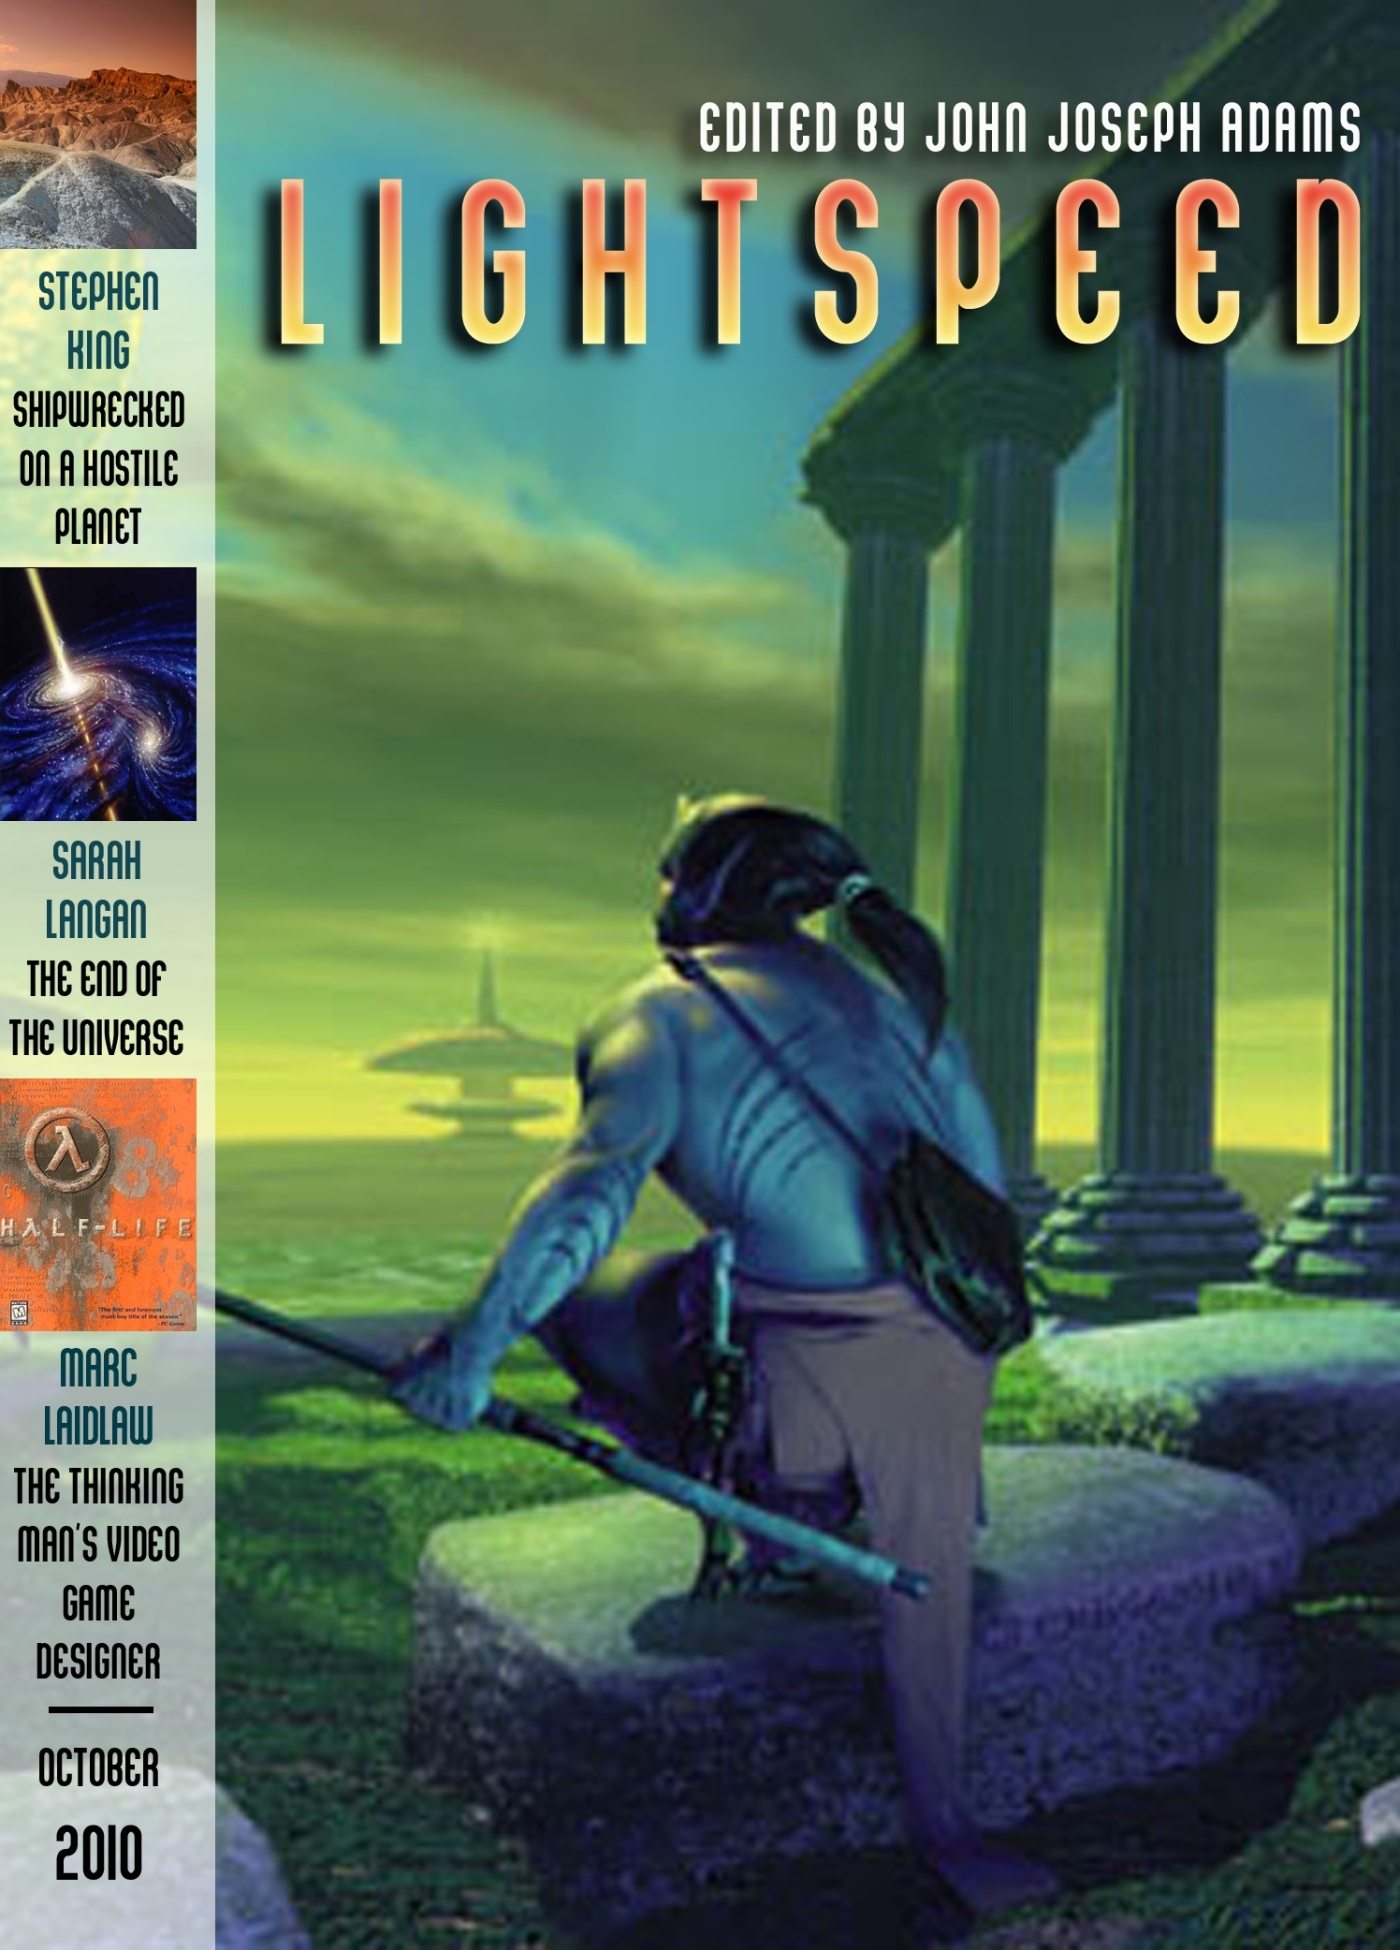 Lightspeed Magazine, October 2010